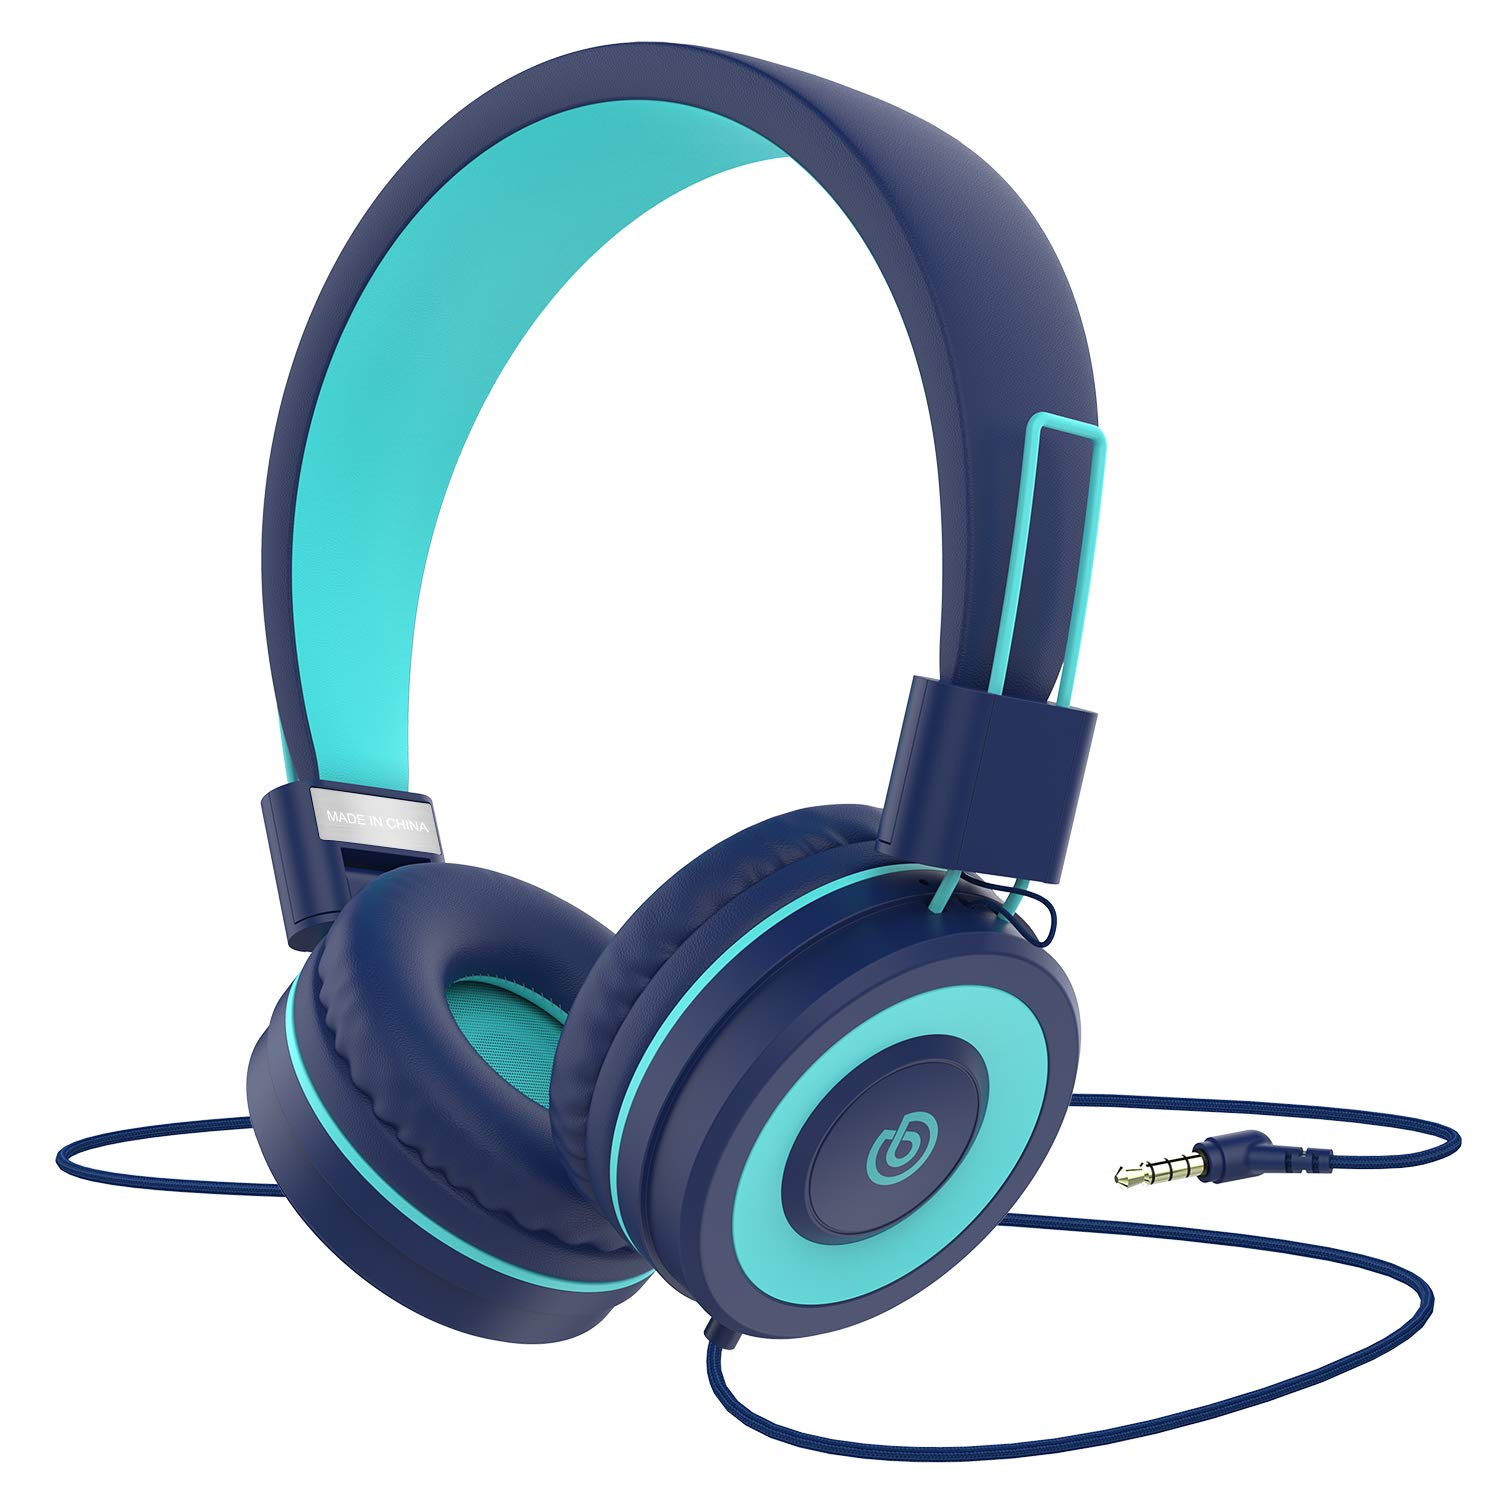 Kids Headphones Besom i66 for Boys Girls Teens Children Toddler Volume Limited Adjustable Foldable Tangle-Free Cord 3.5mm Jack Wired Over-Ear Headset for iPad iPhone Computer MP3/4 Kindle Tablet(Blue)